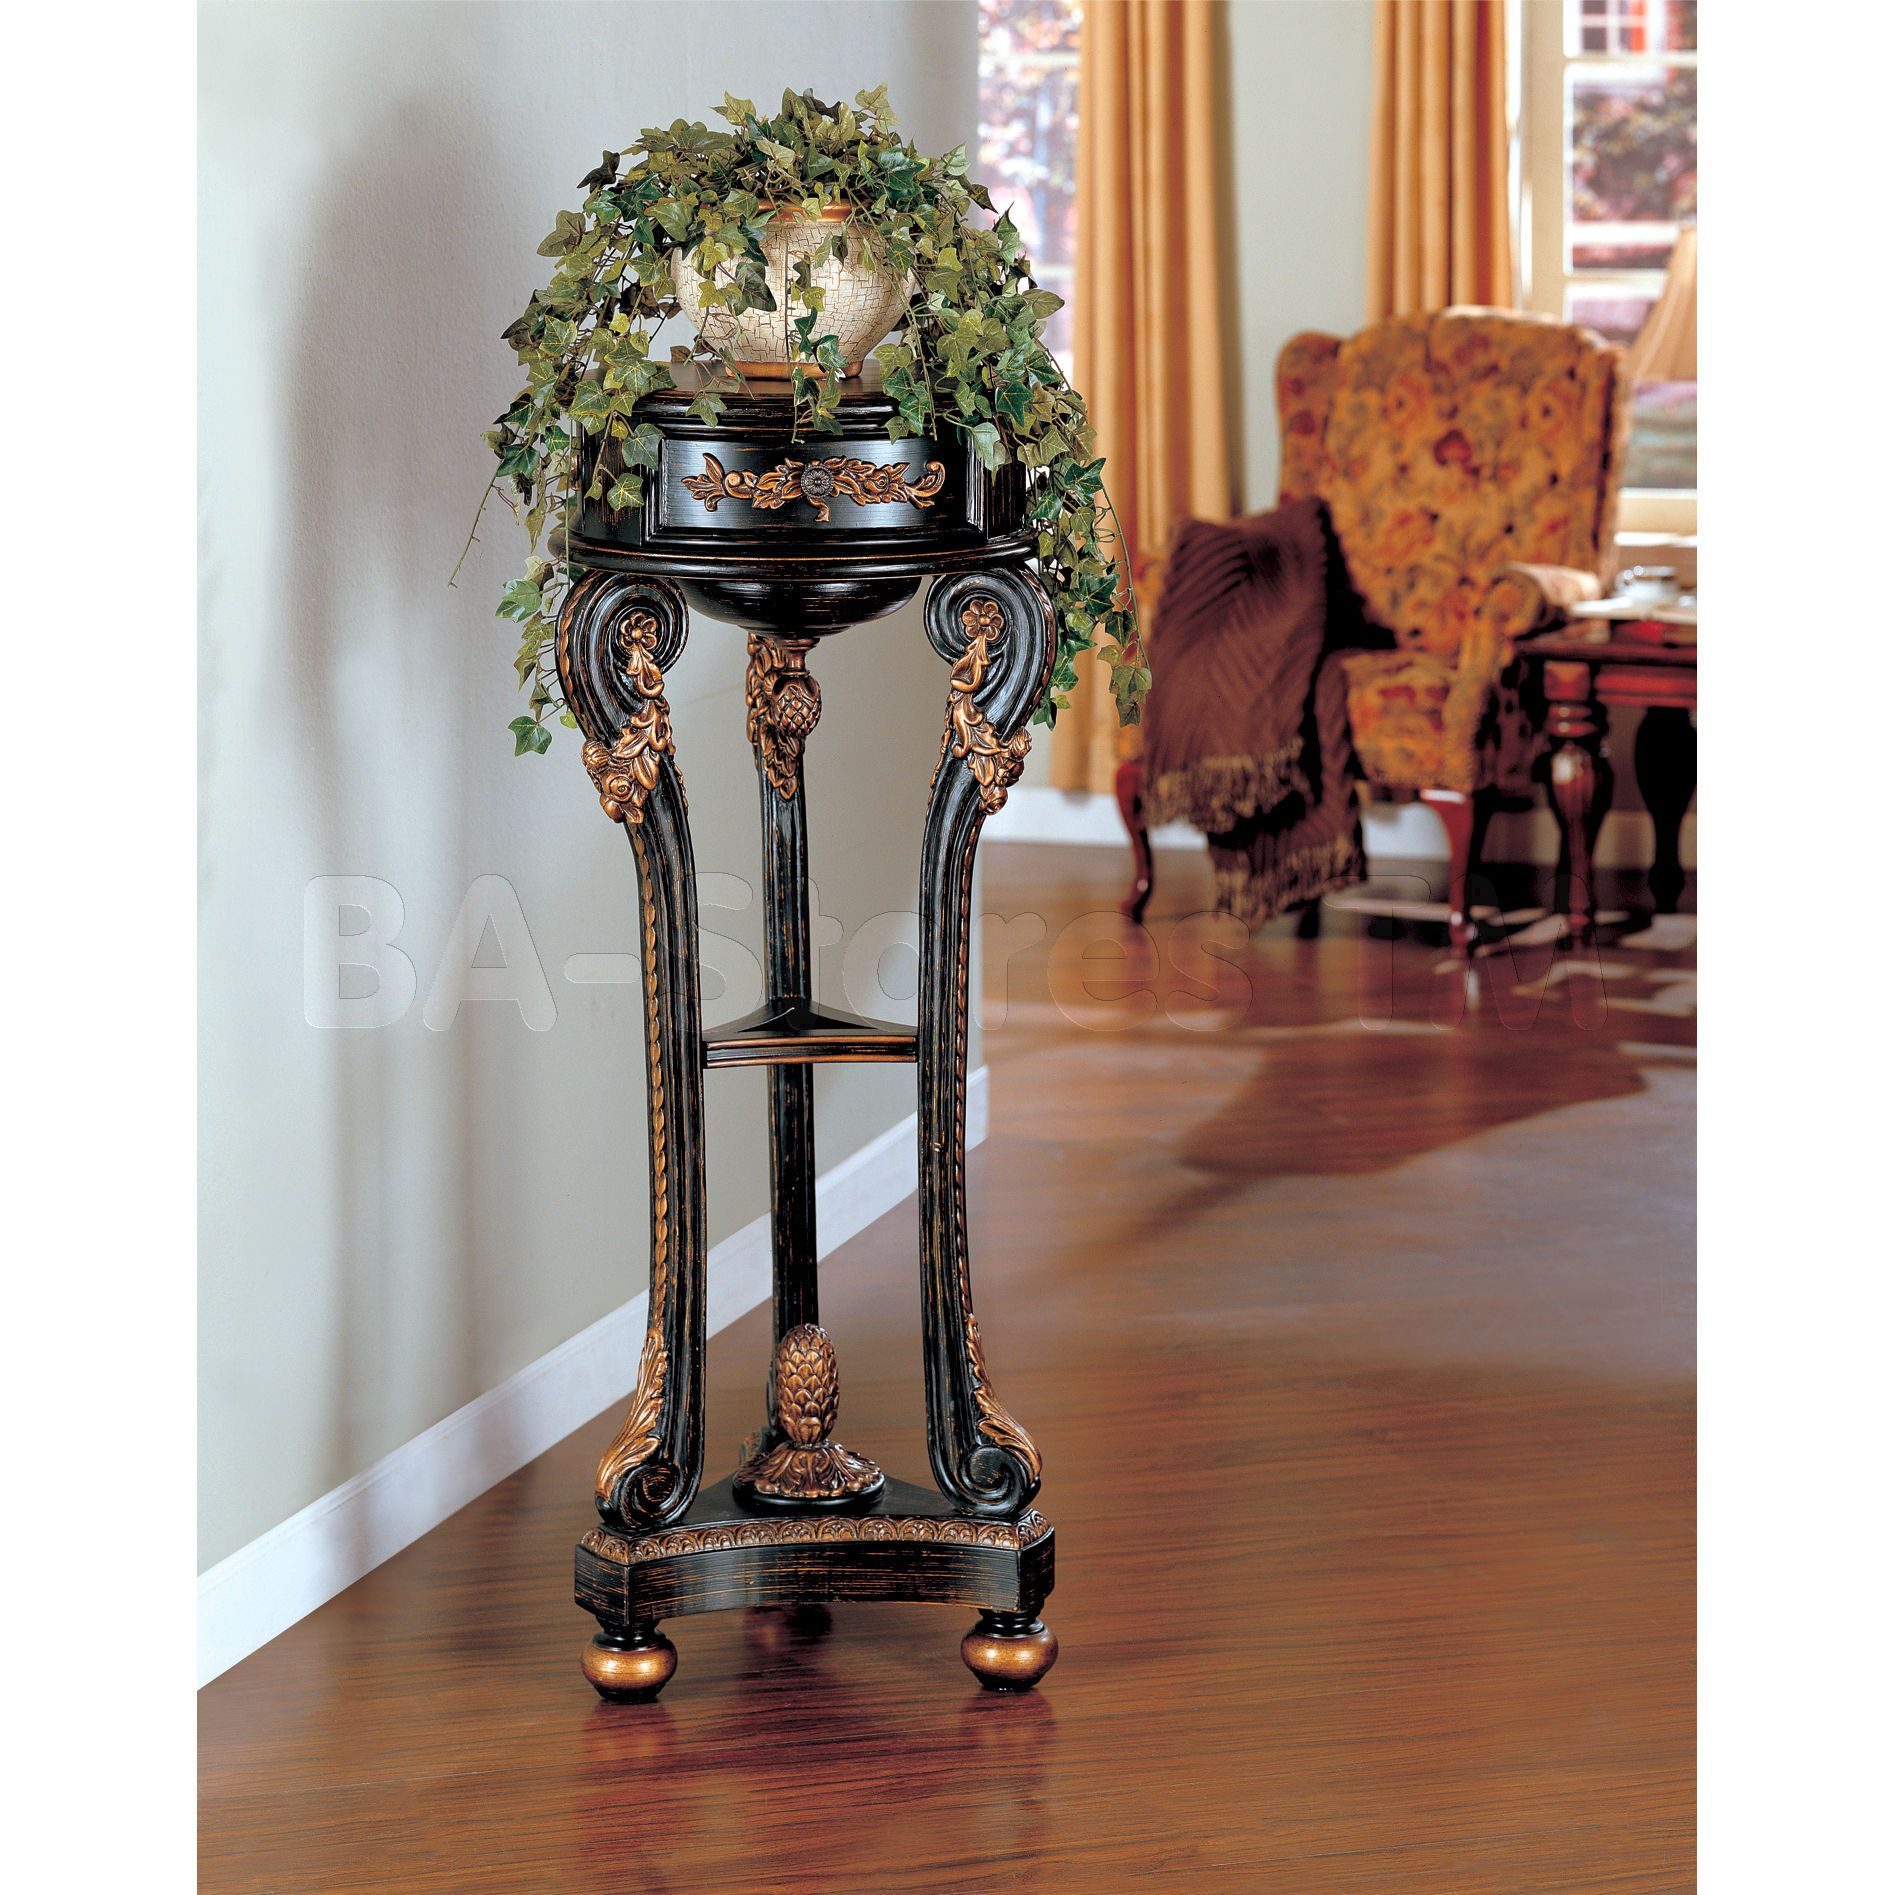 Wood And Metal Plant Stand Plant Stands Indoor Metal Wood Plant Stands Buy Now